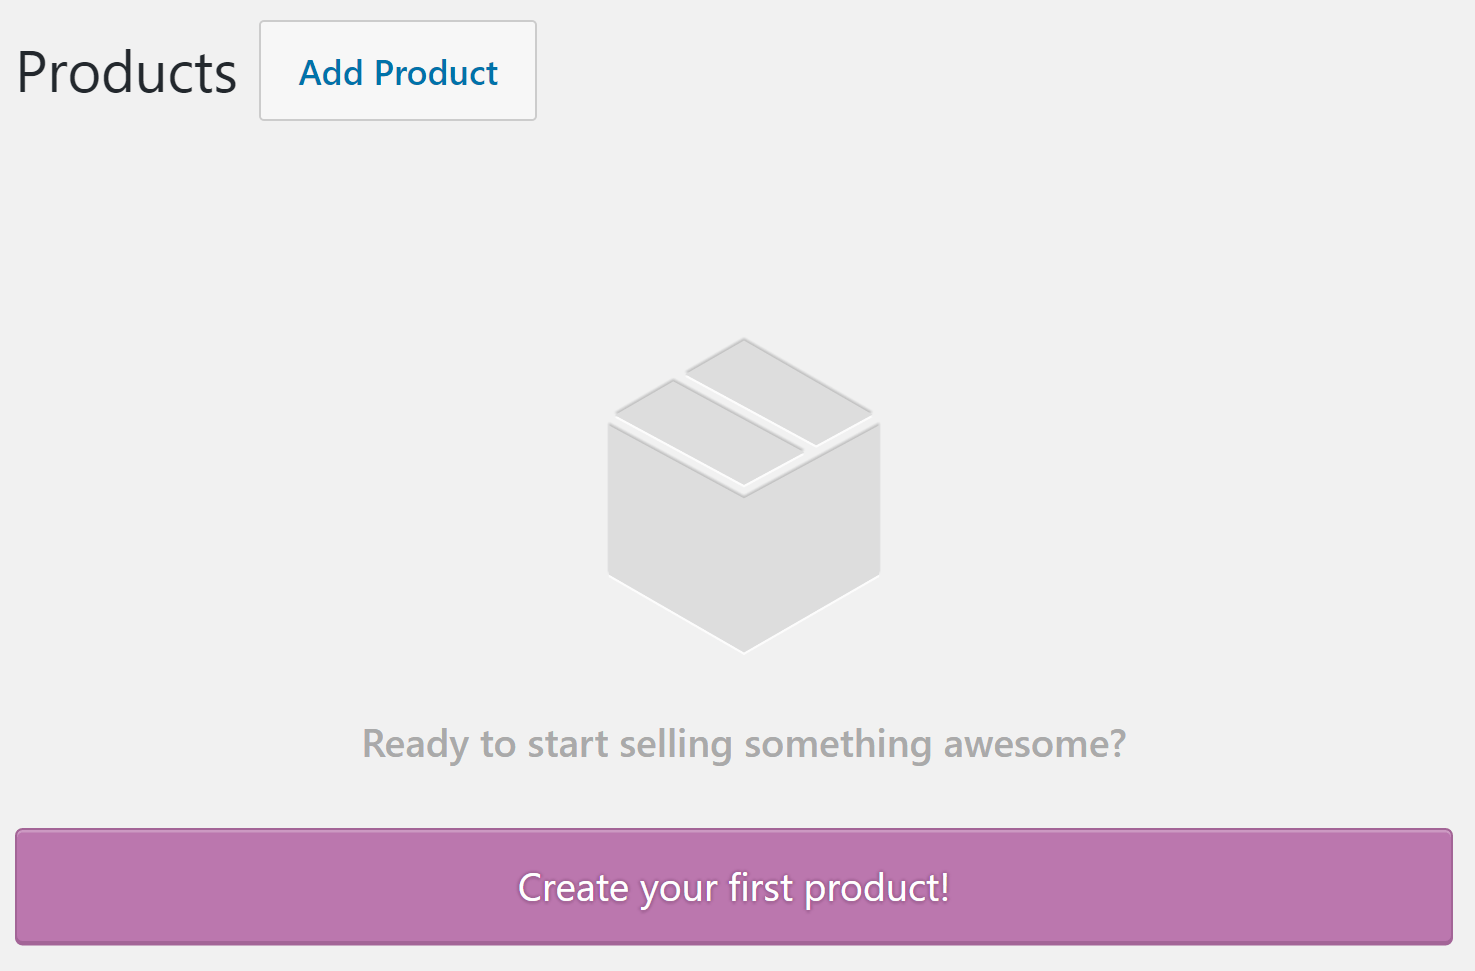 The option to add a new product to WooCommerce.